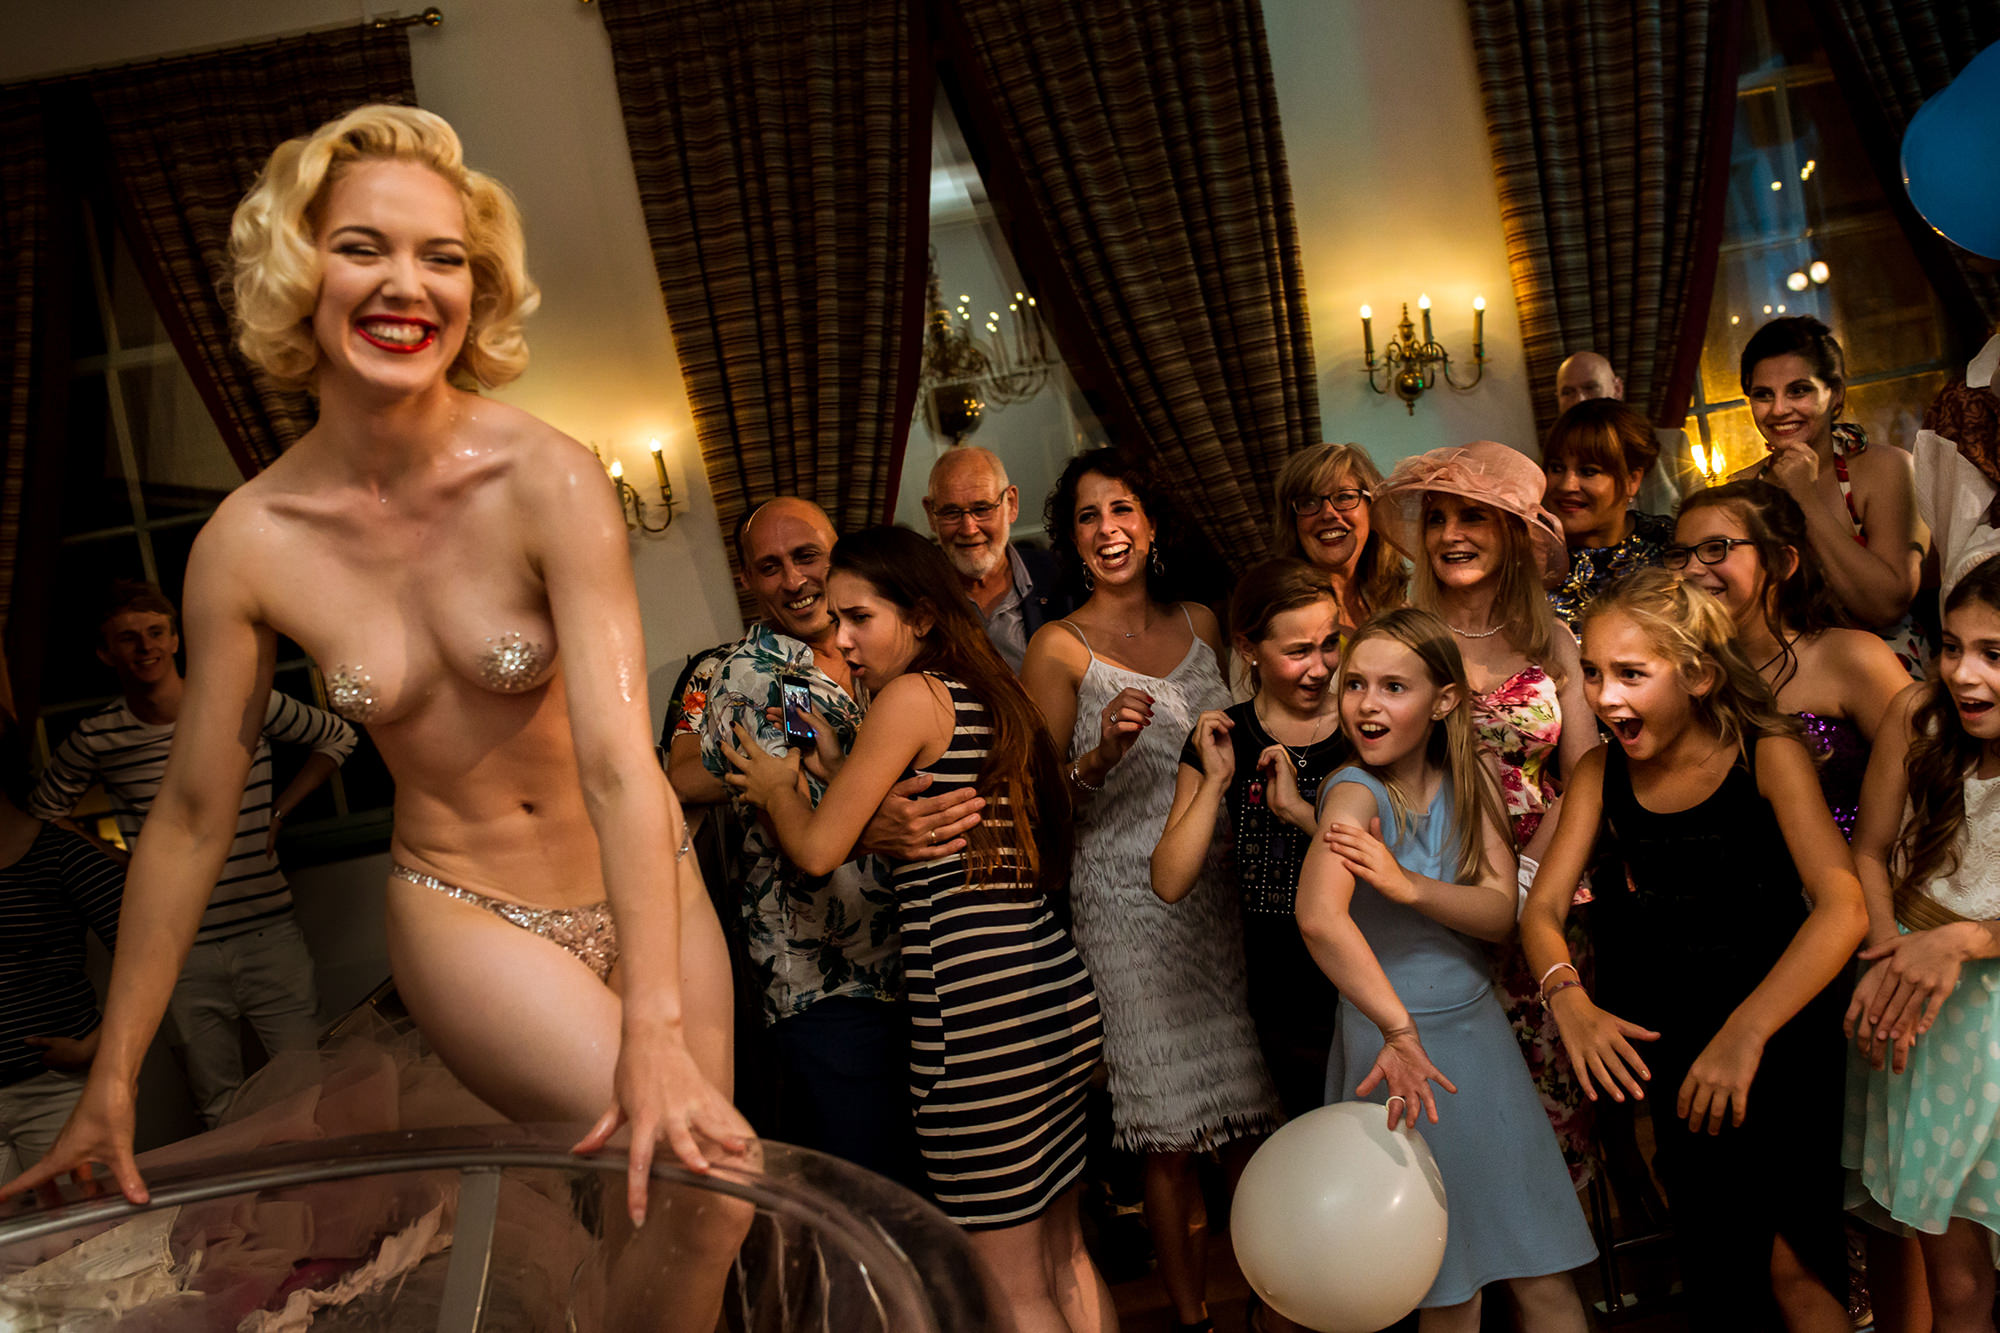 guests-and-young-girls-reacting-to-burlesque-dancer-on-table-worlds-best-wedding-photos-fotobelle-netherlands-wedding-photographers